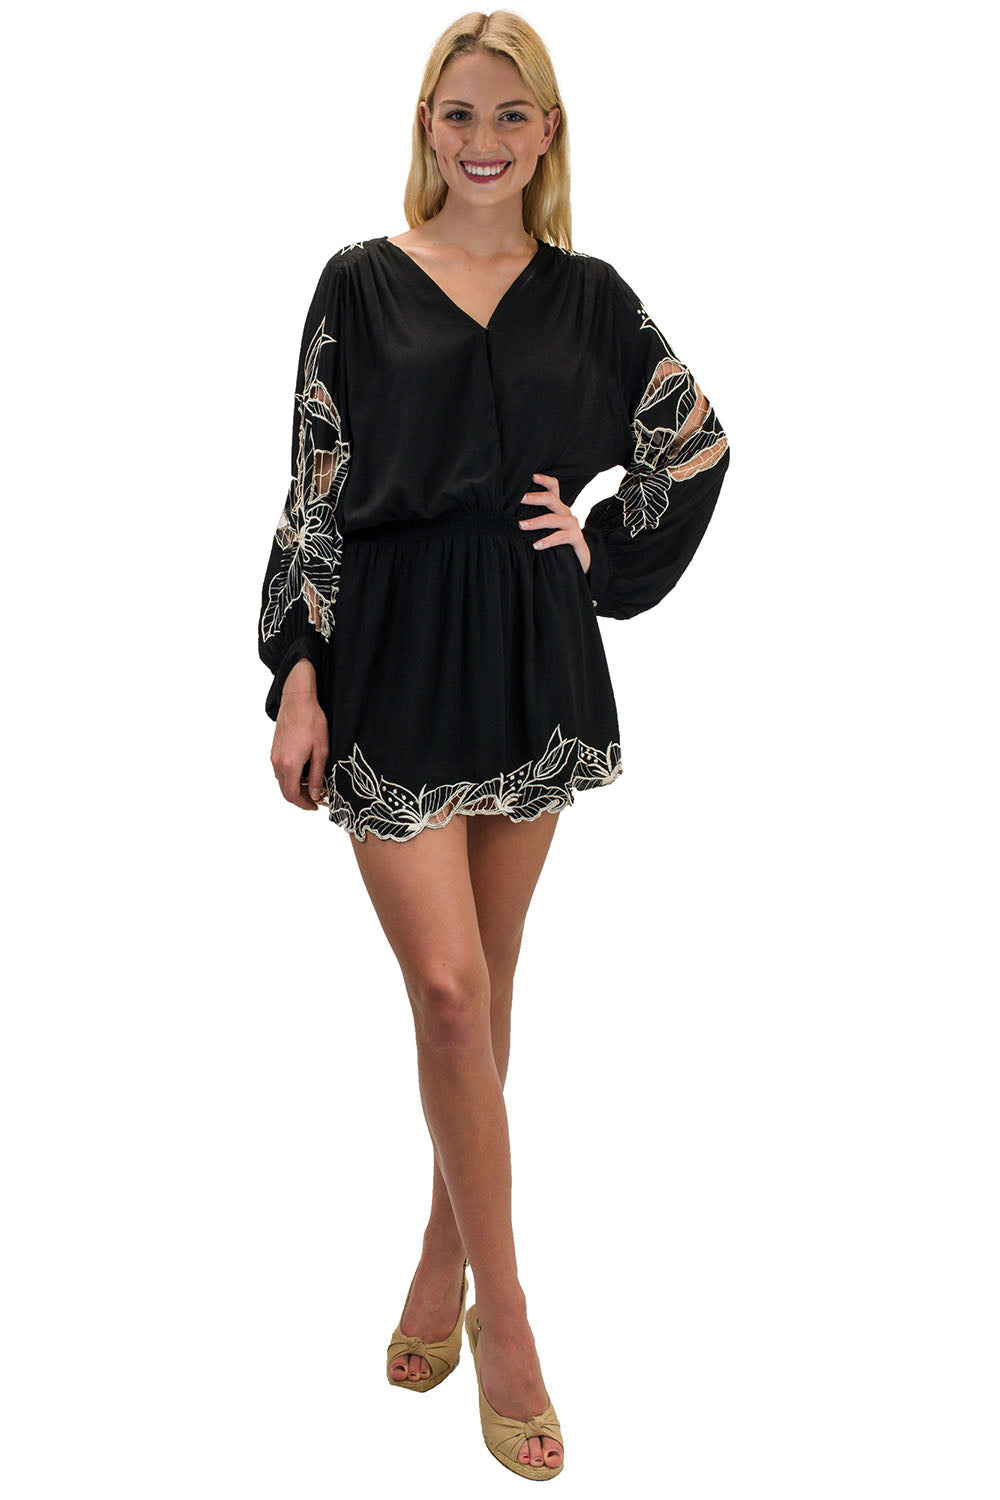 Kilia Short Dress Black